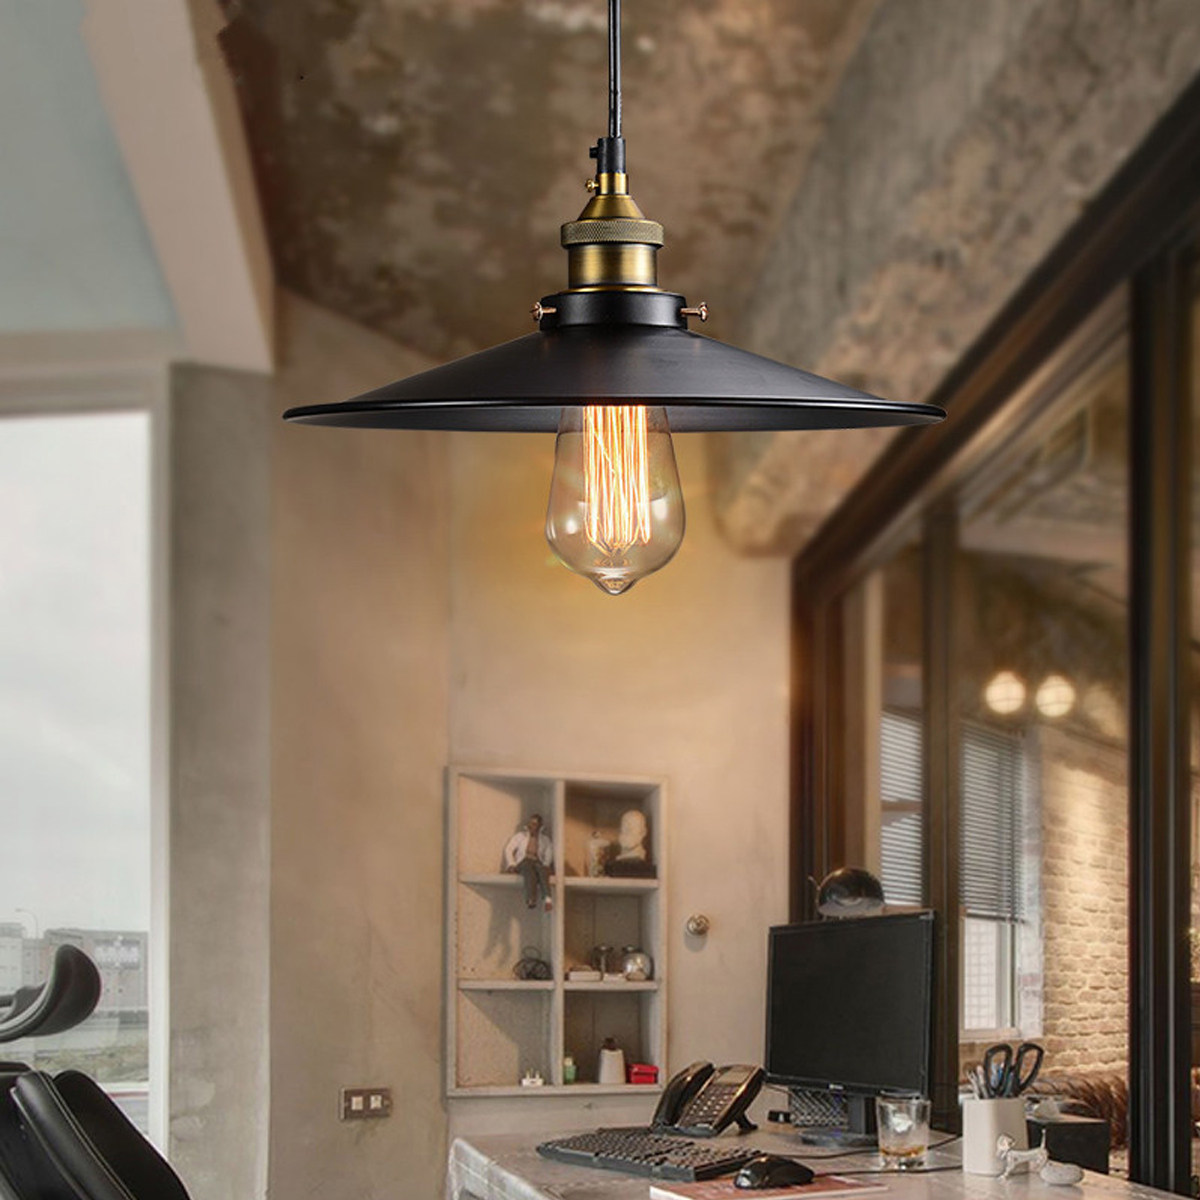 26cm Loft Vintage Ceiling Lamp Retro Industrial Chandelier Fixture For Cafe Restaurant Bar American Style Metal Light Ceiling Lights Aliexpress